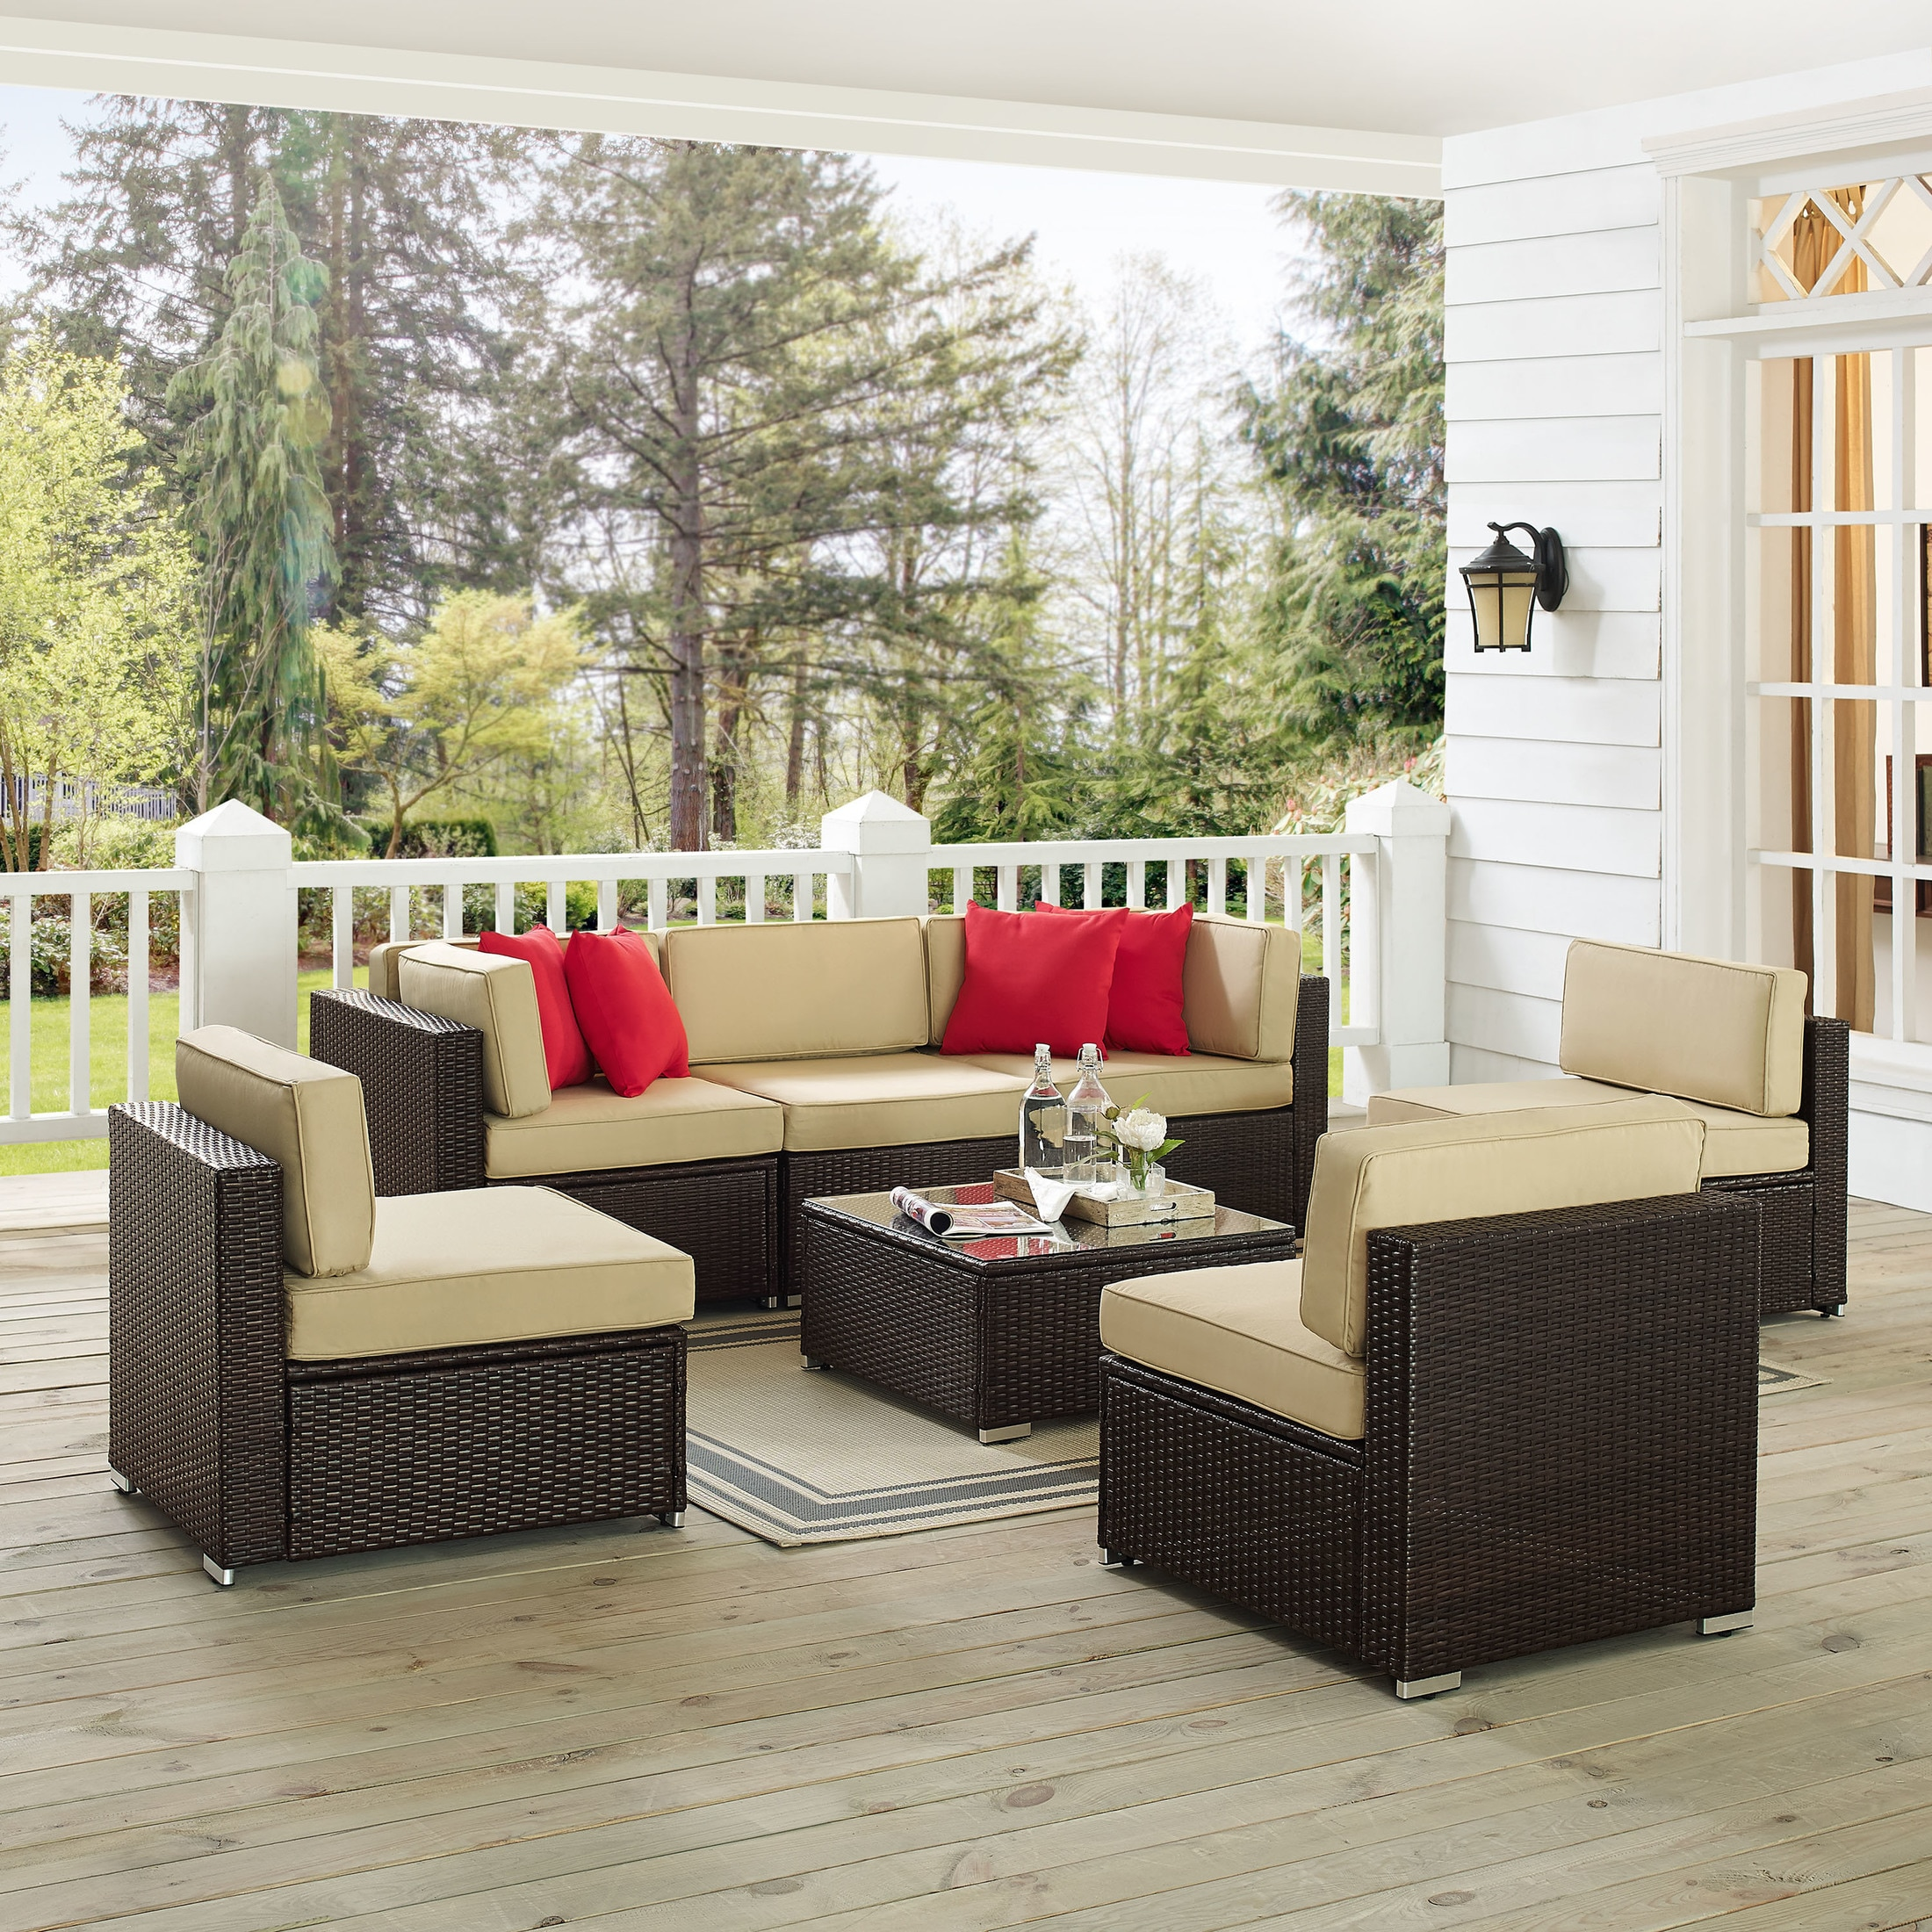 Outdoor Furniture - Lakeside 3-Piece Outdoor Sofa, 3 Armless Chairs, and Coffee Table Set